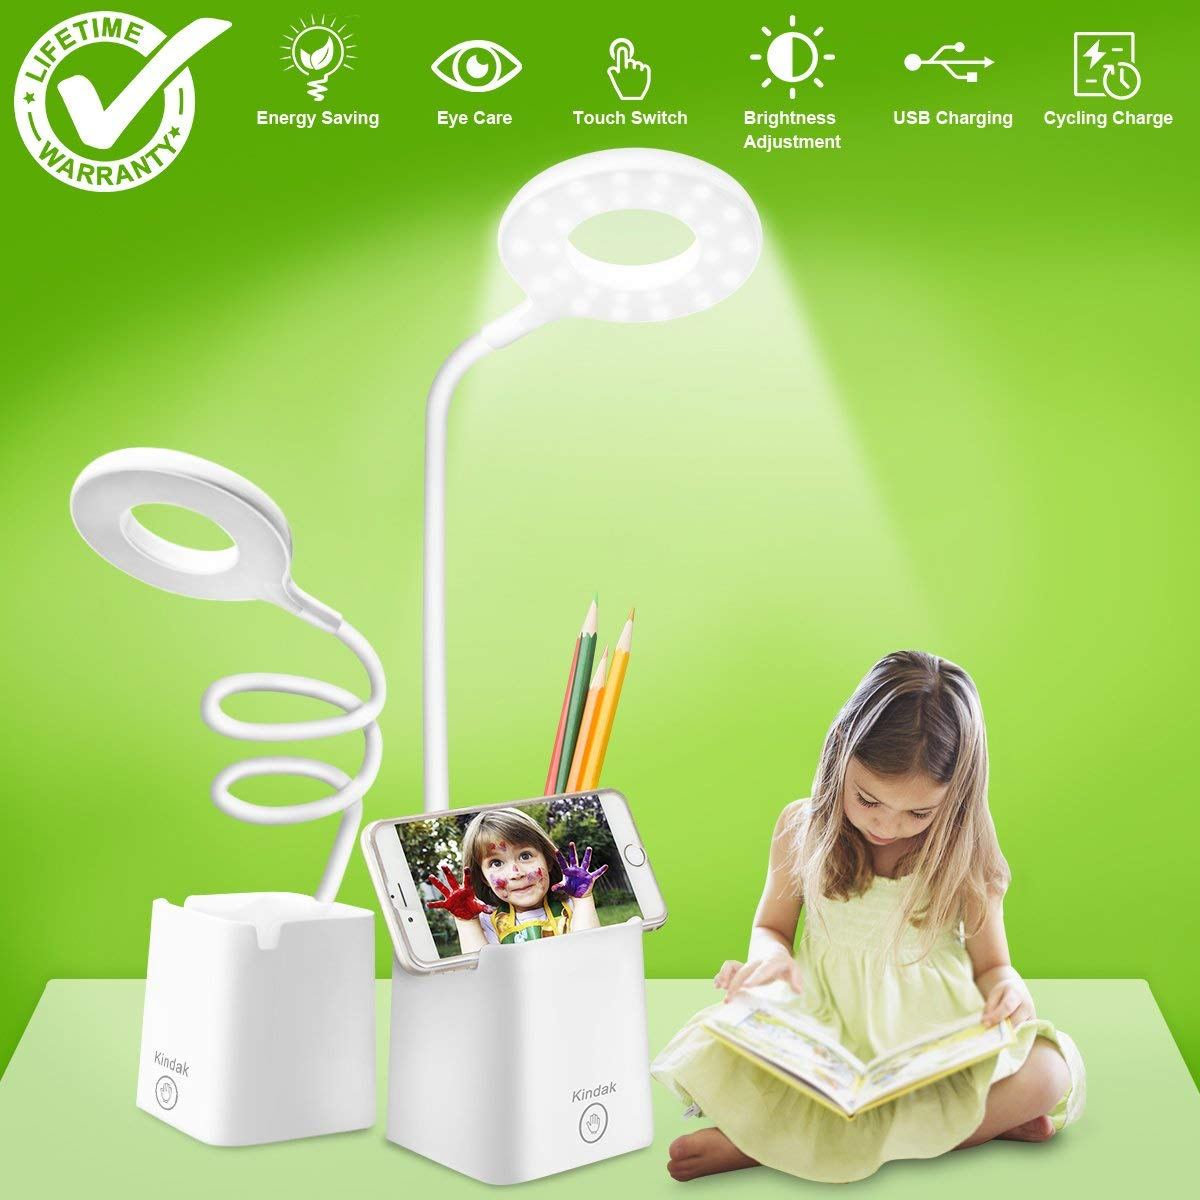 led Desk Lamp, Table Lamps with Shelves Holder USB Charging Port, Touch Control Dimmable White Study Reading Book Lamp Eye-caring Light Night, Flexible Gooseneck Office Task lamp for Bedroom Bedside